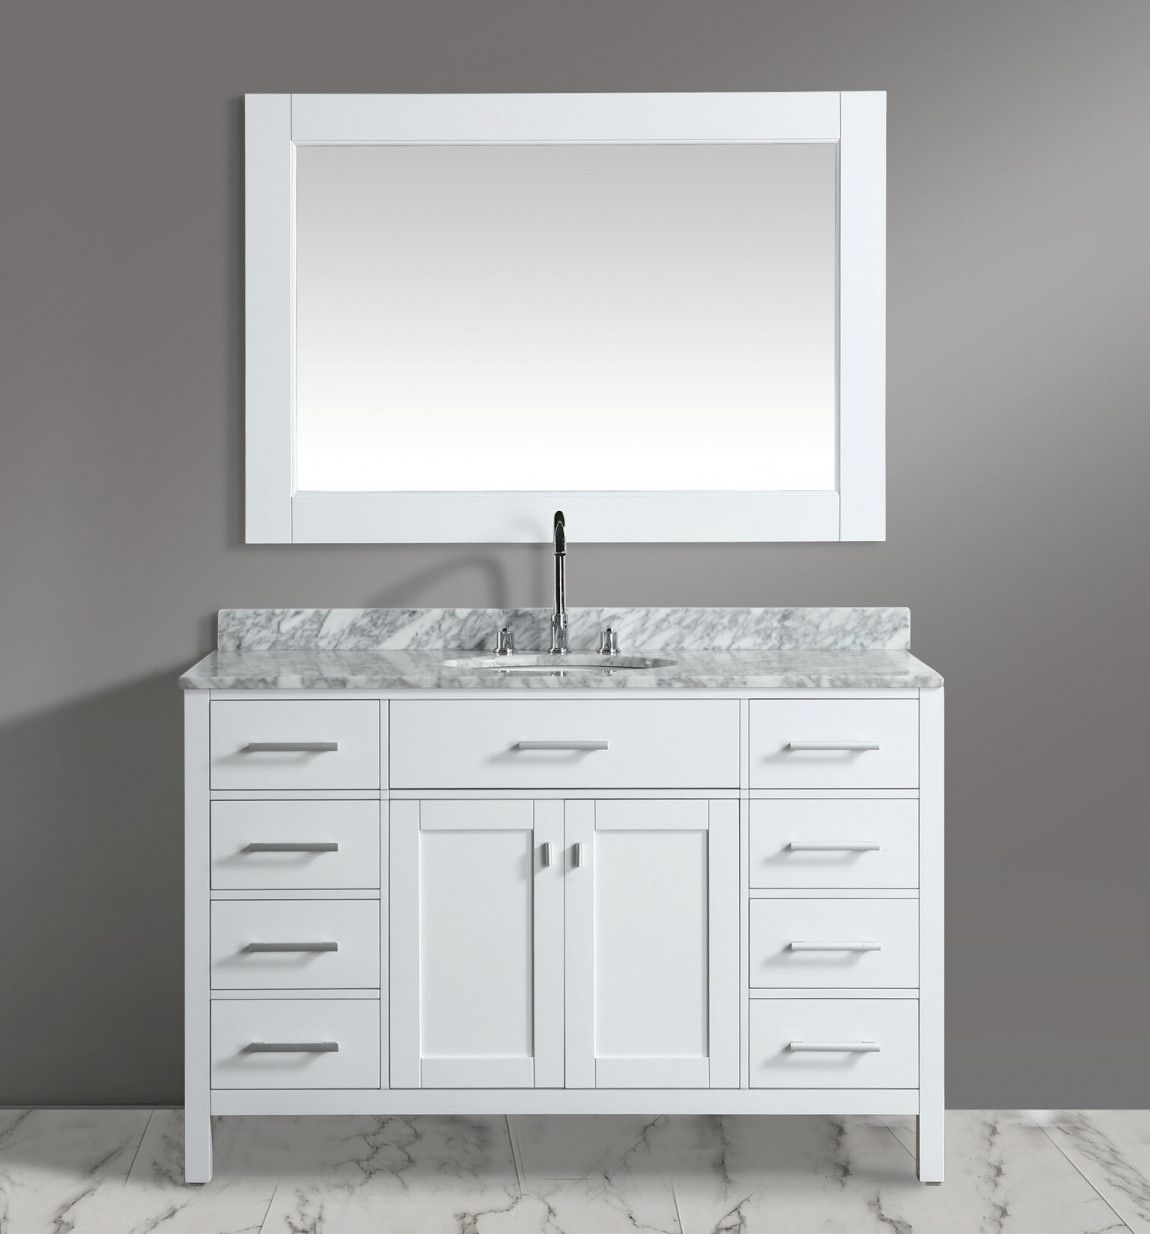 50 54 Bathroom Vanity Cabinet Lowes Paint Colors Interior Check More At Http